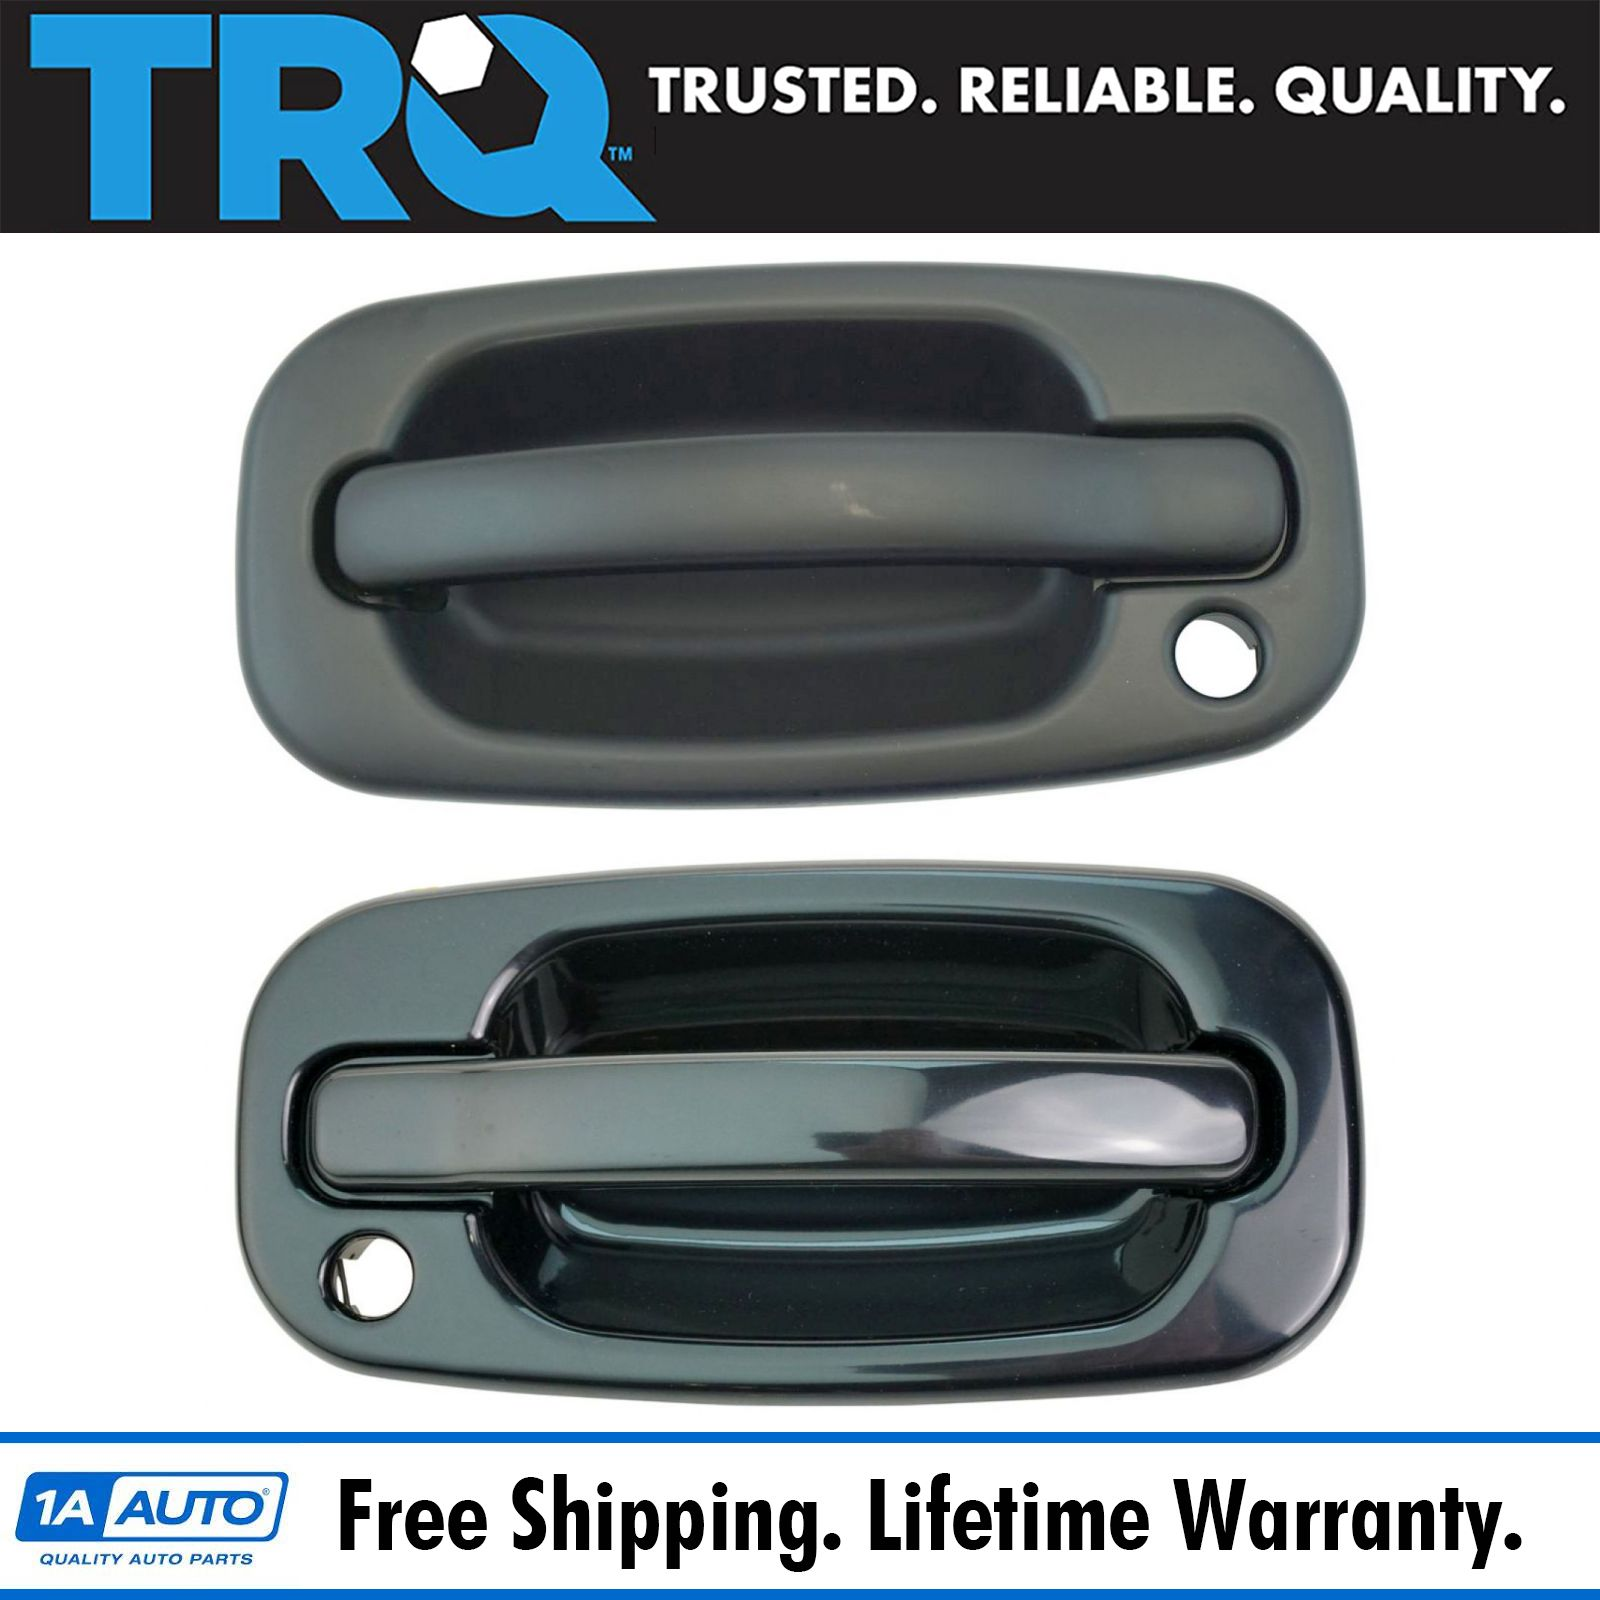 Rear Black Textured Exterior Door Handle LH RH Pair Kit for GM Pickup Truck New